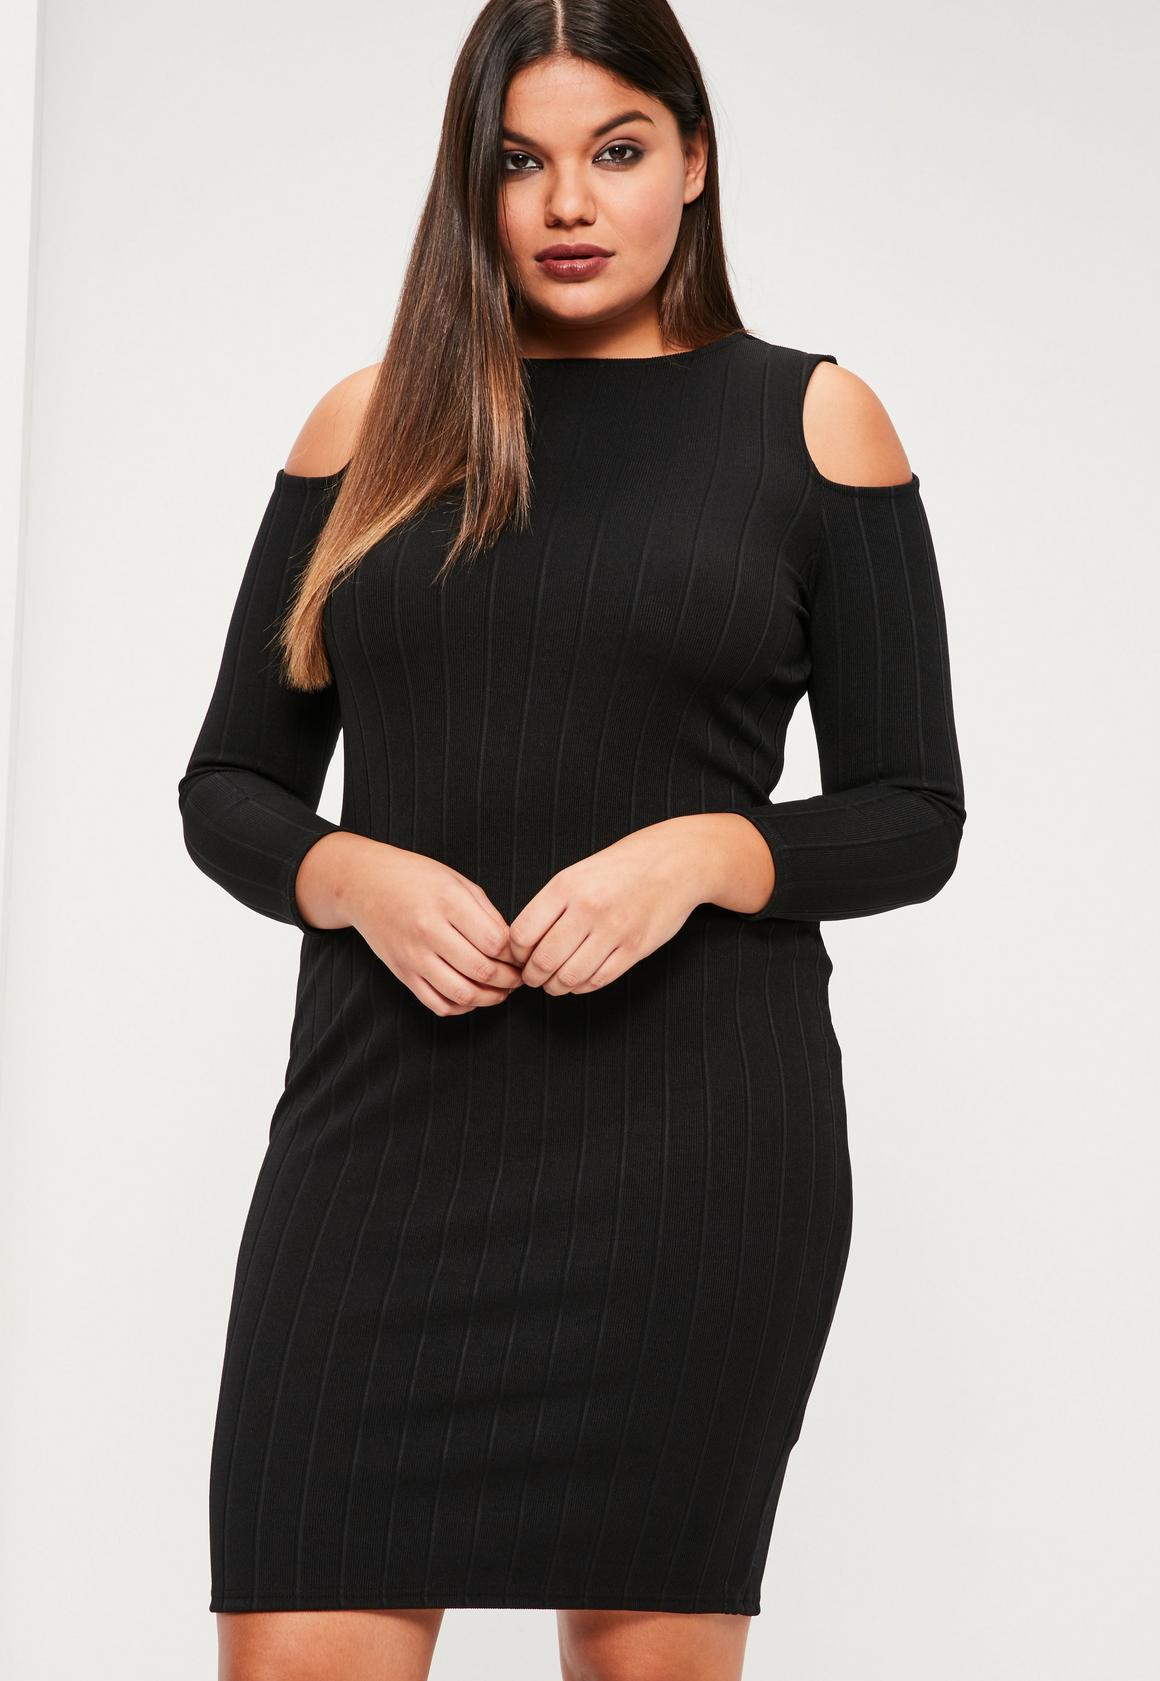 Black bodycon plus size dress